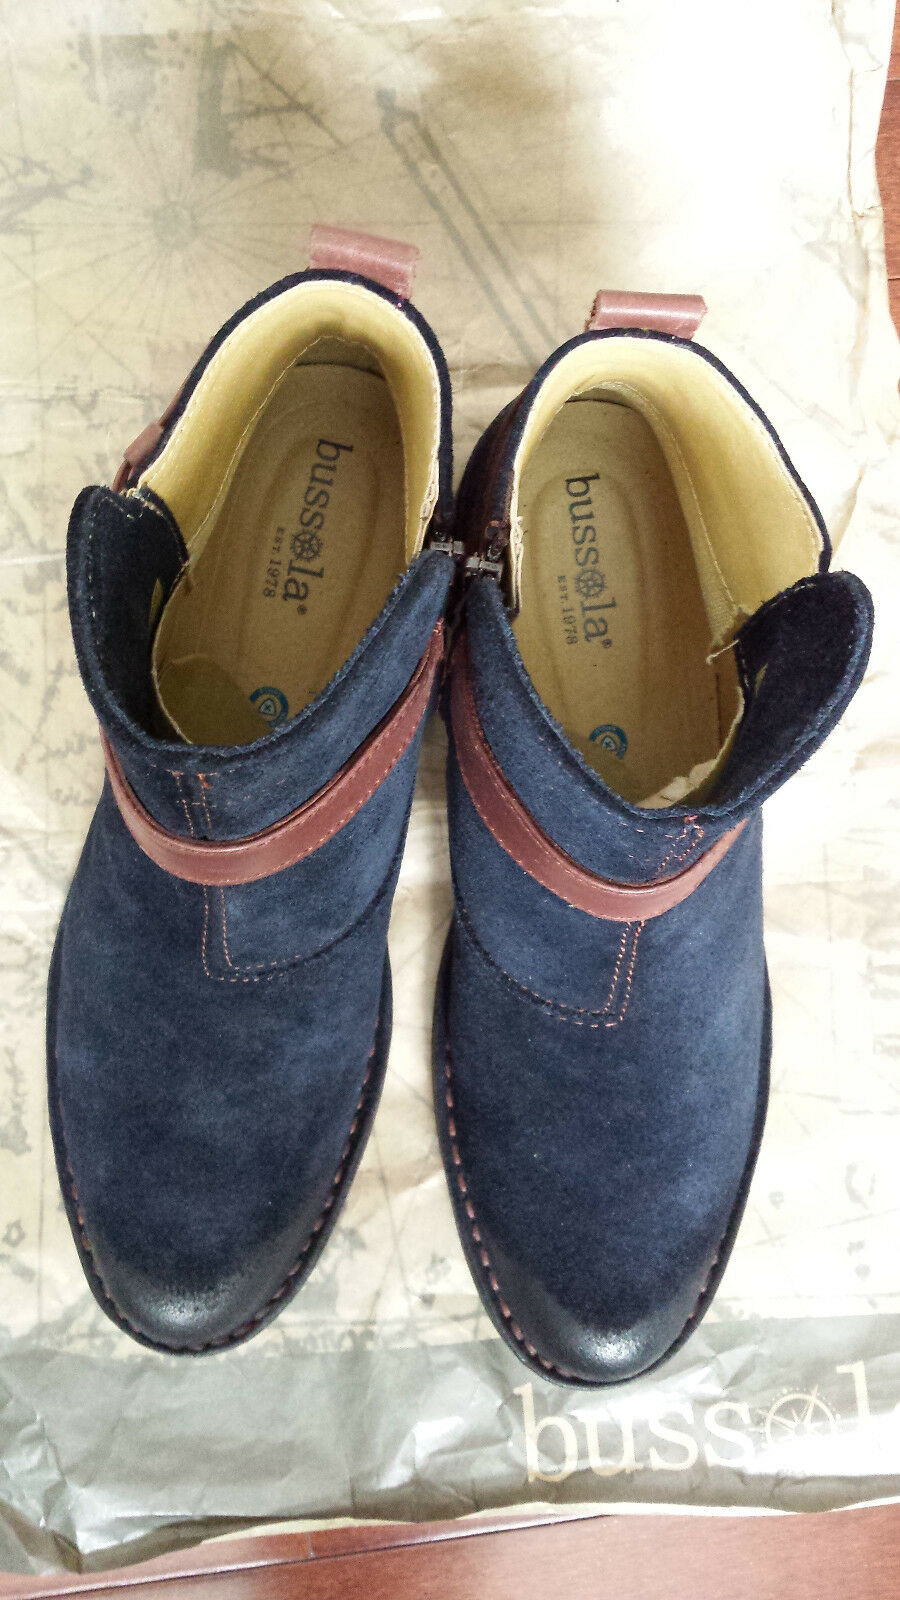 NIB Bussola Lyon stivali Sundance Navy Suede  Marronee Leather EU 37  US 7-7.5 M